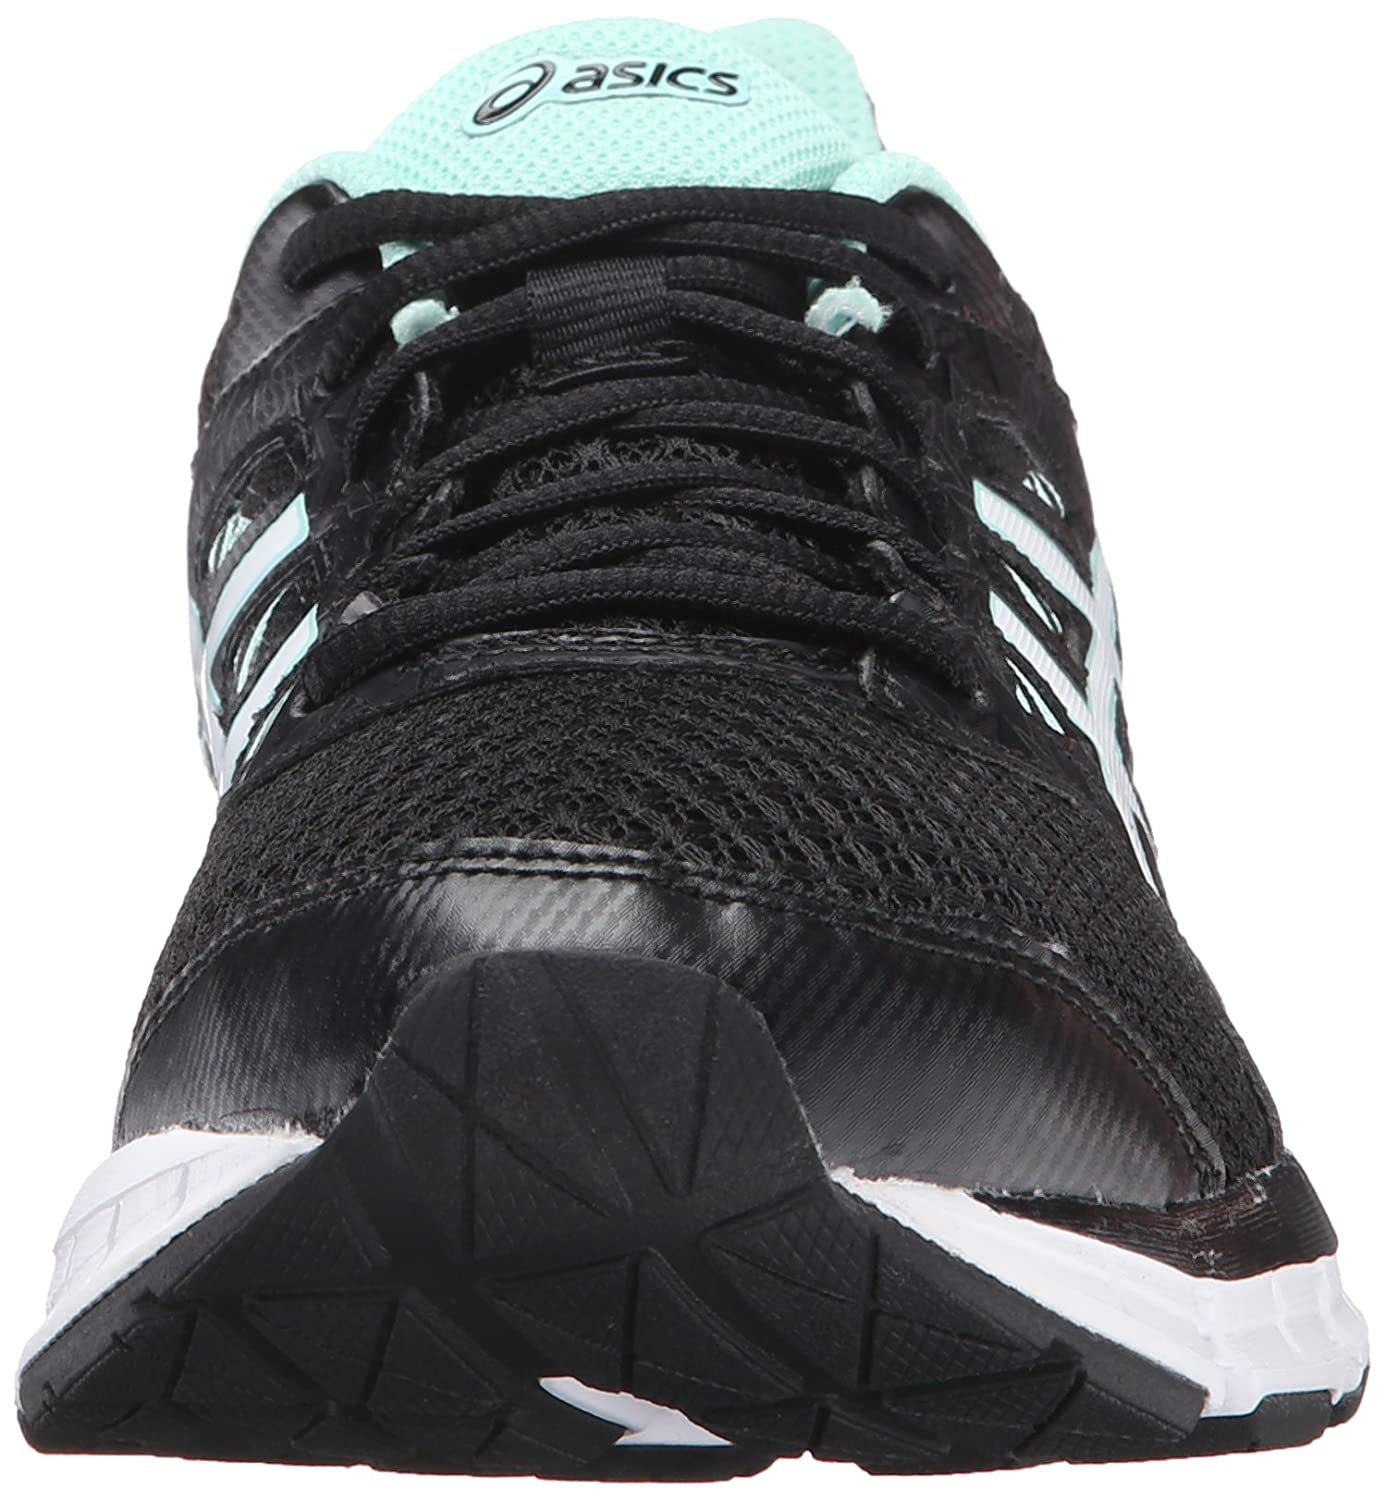 Zapato deportivo ASICS Gel Excite Zapato 4 Excite pour ASICS mujer/ mujer B01HSH7MCG ffb83f2 - alleyblooz.info